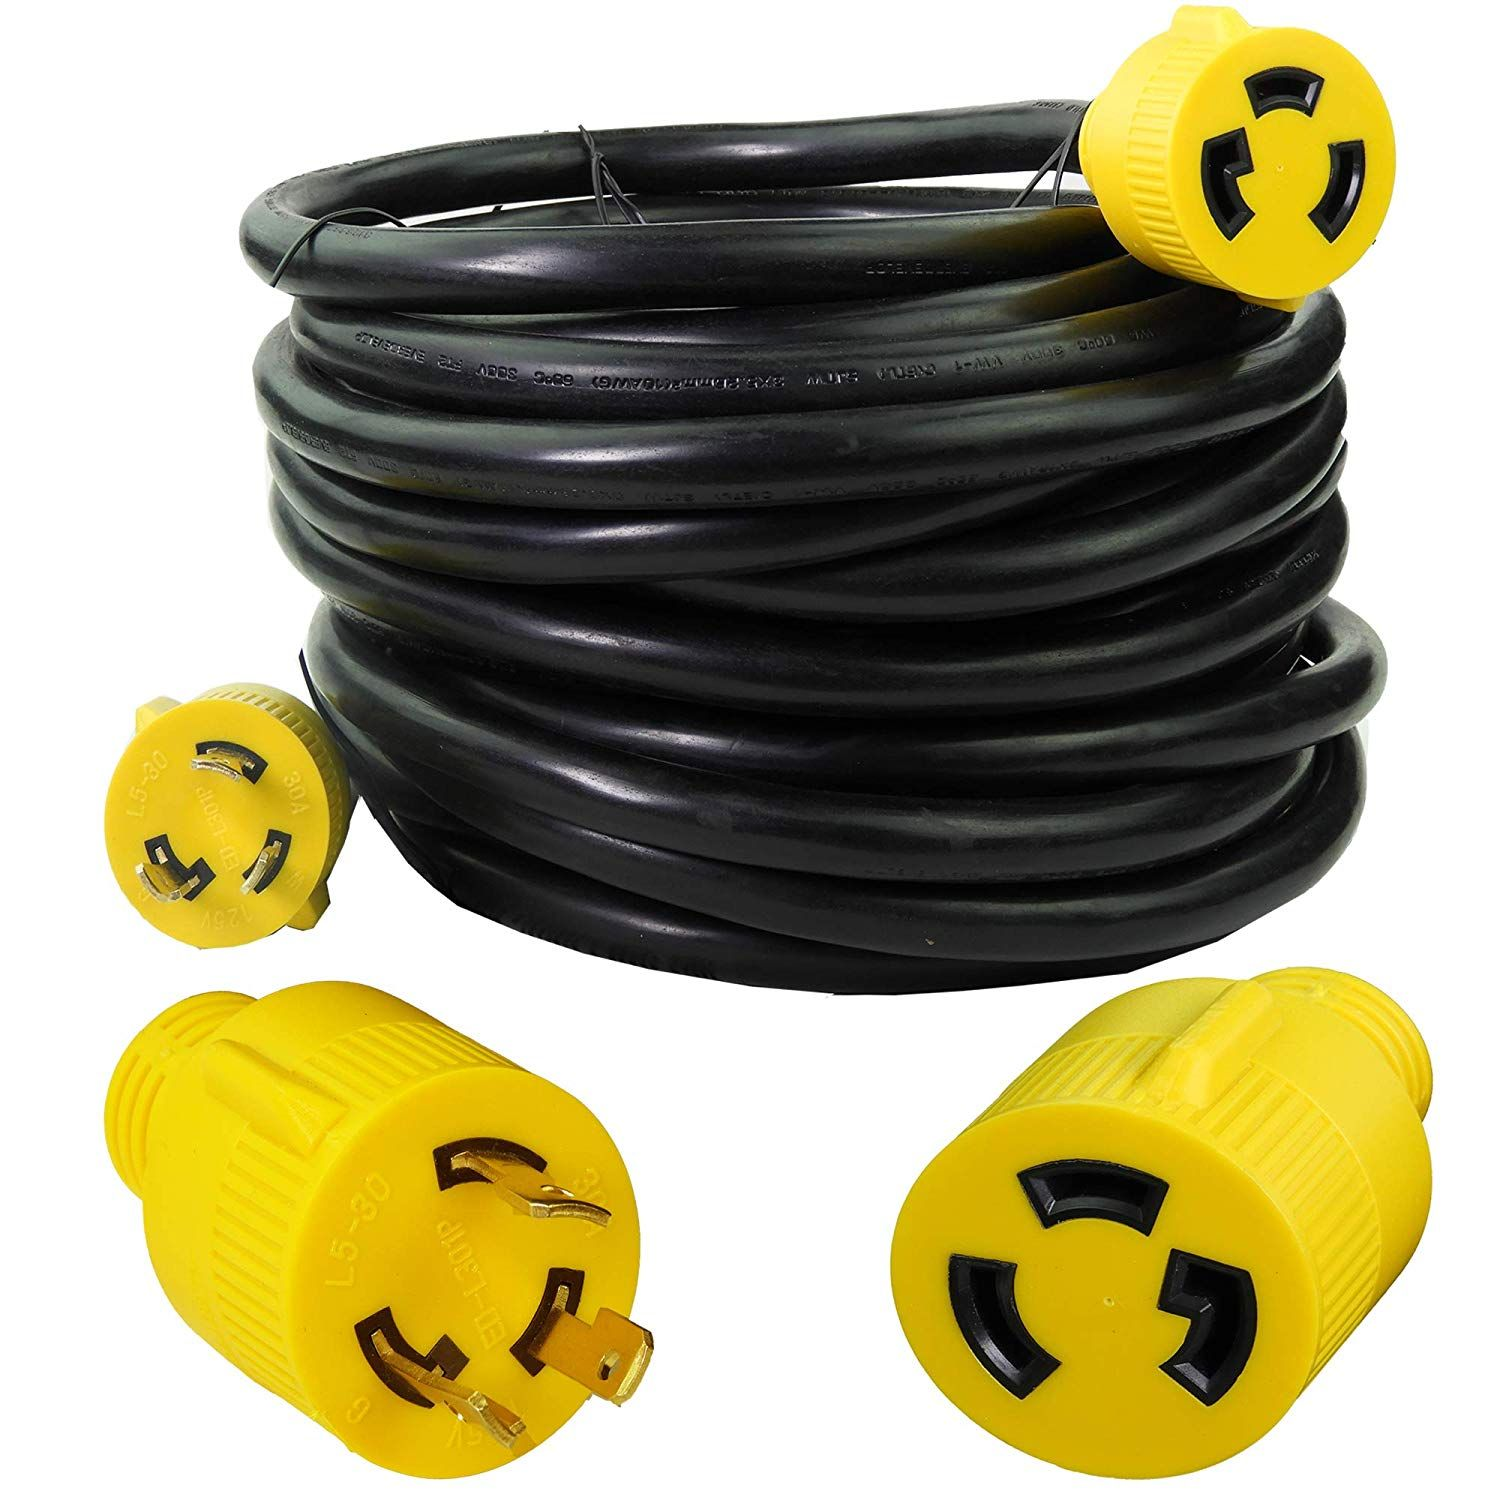 Leisure Cords 3 Prong 50 Foot 30 Amp Generator Cord 10 Gauge Heavy Duty L5 30 Generator Power Cord Up To 3750w 50 Generator Cords Extension Cord Adapter Plug